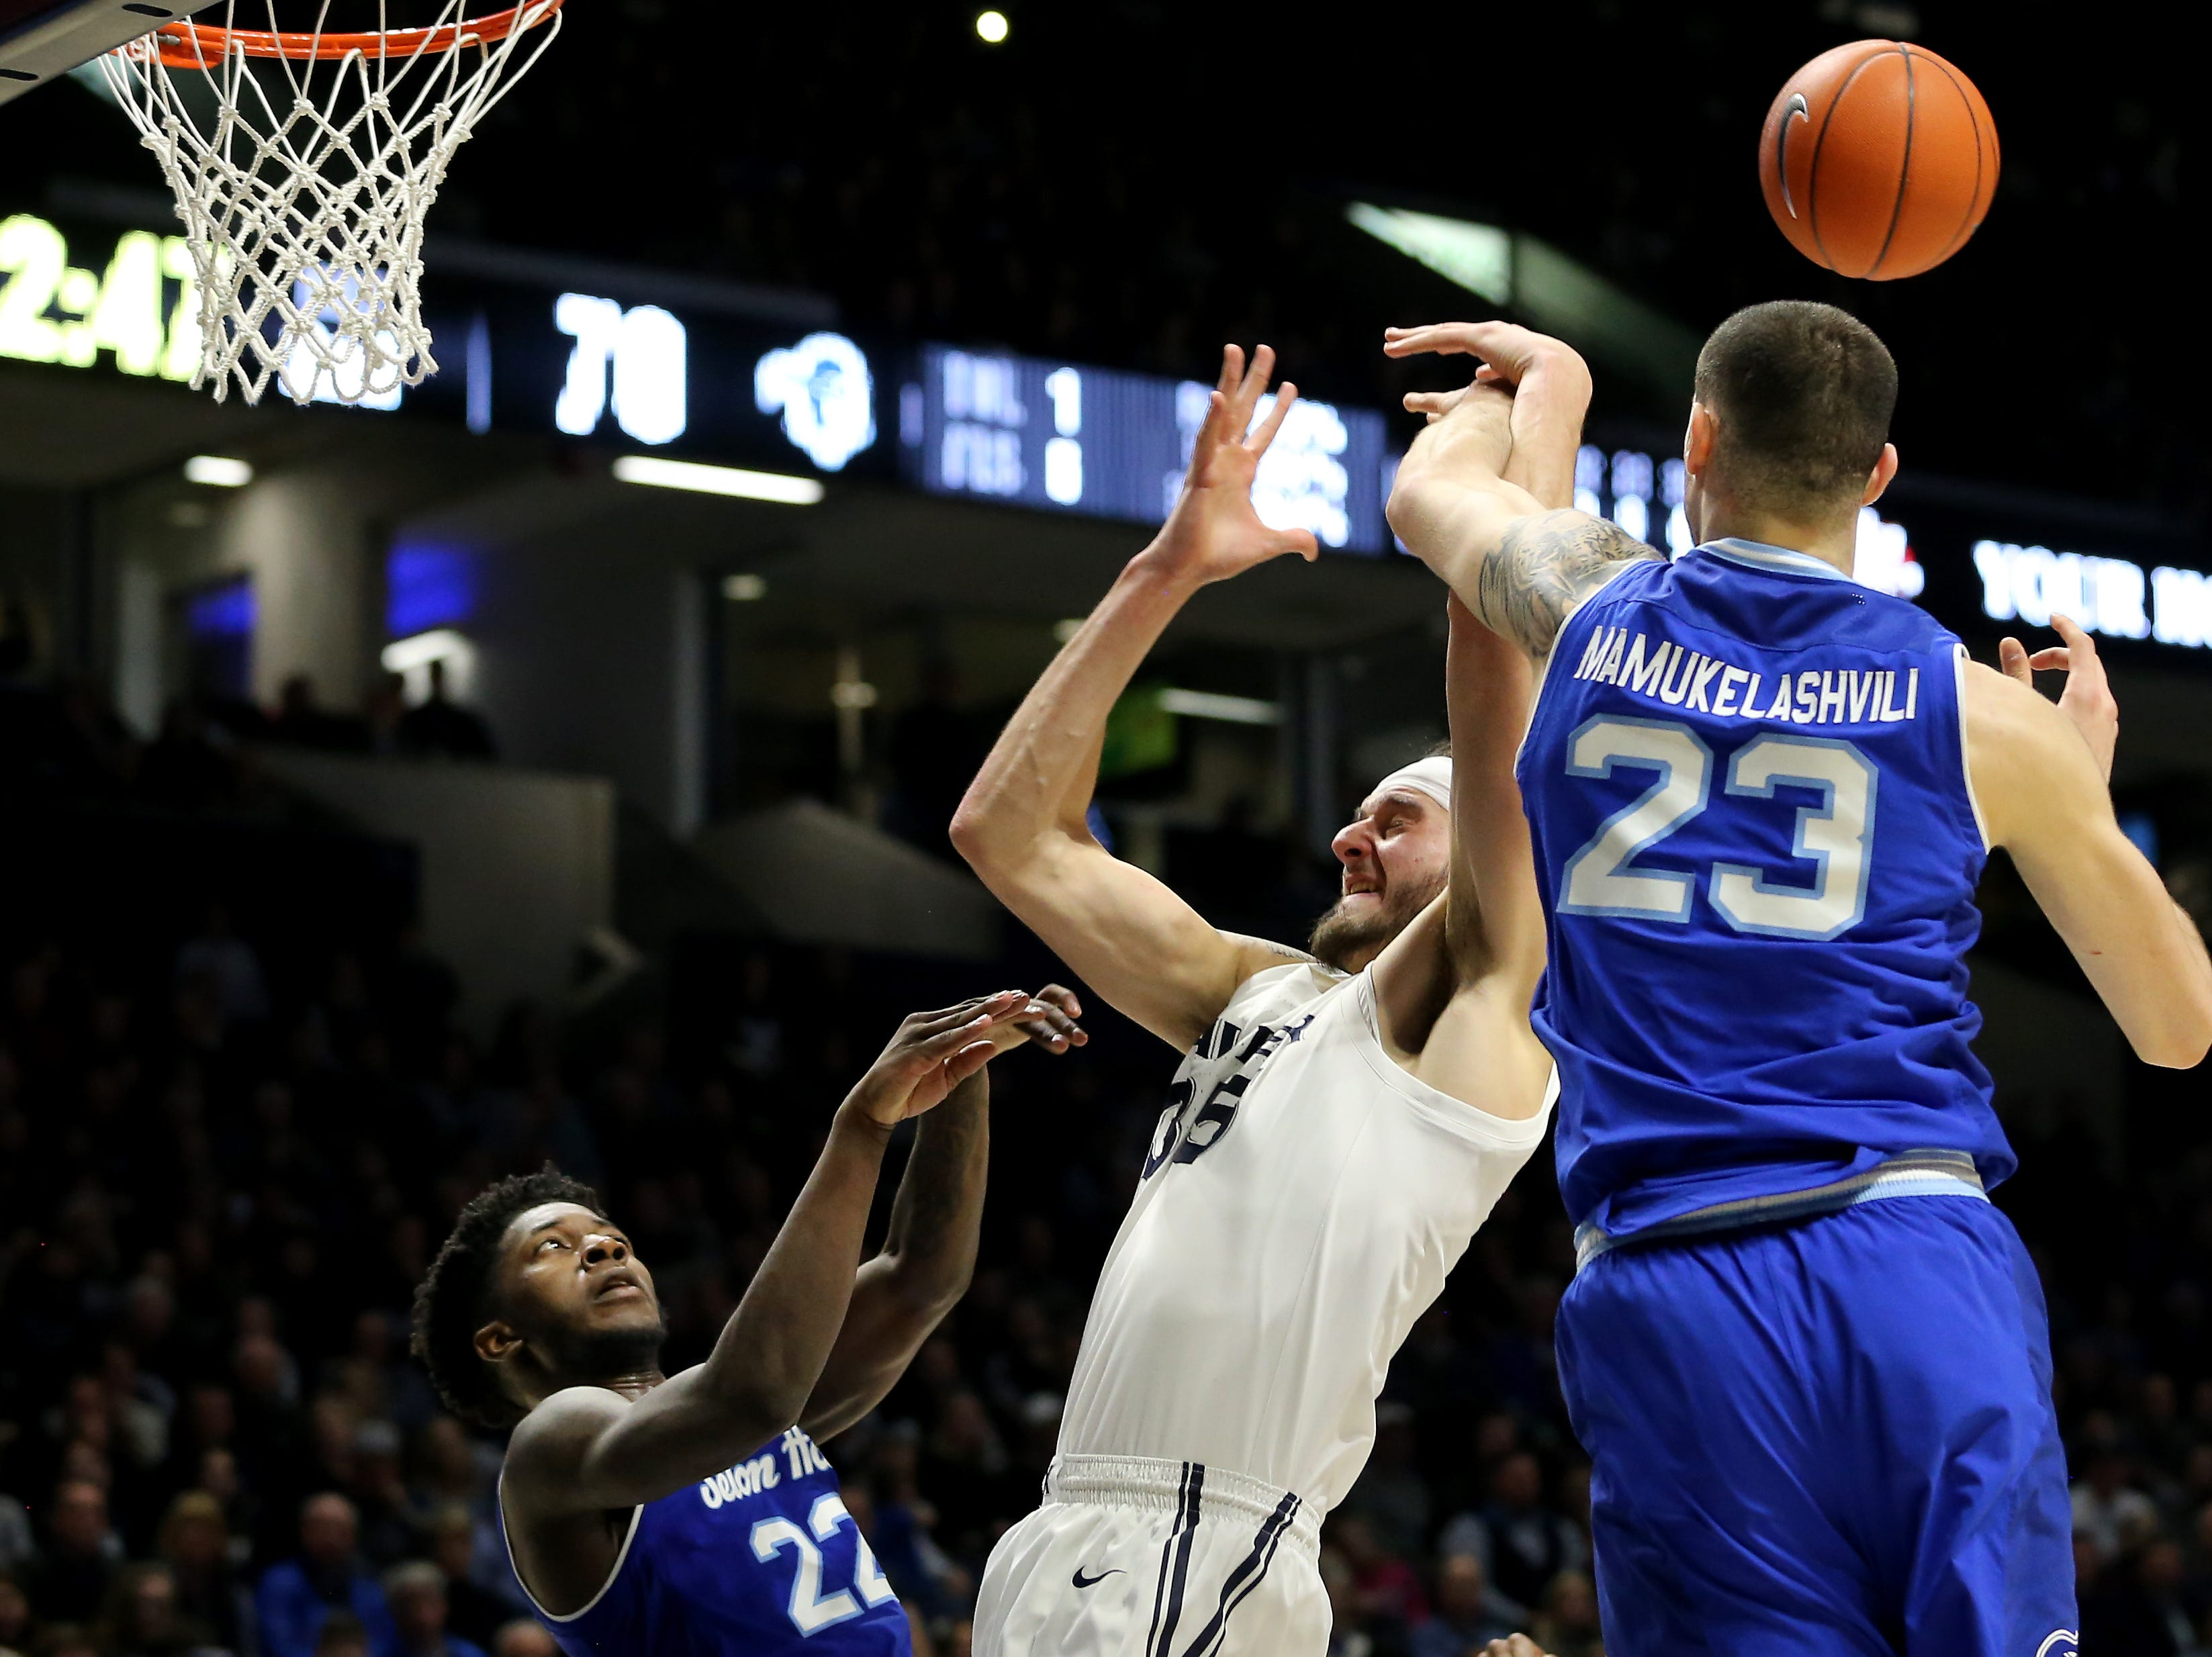 Seton Hall Pirates forward Sandro Mamukelashvili (23) strips the ball from Xavier Musketeers forward Zach Hankins (35) in the second half of an NCAA college basketball game, Wednesday, Jan. 2, 2019, at the Cintas Center in Cincinnati. Seton Hall won 80-70.